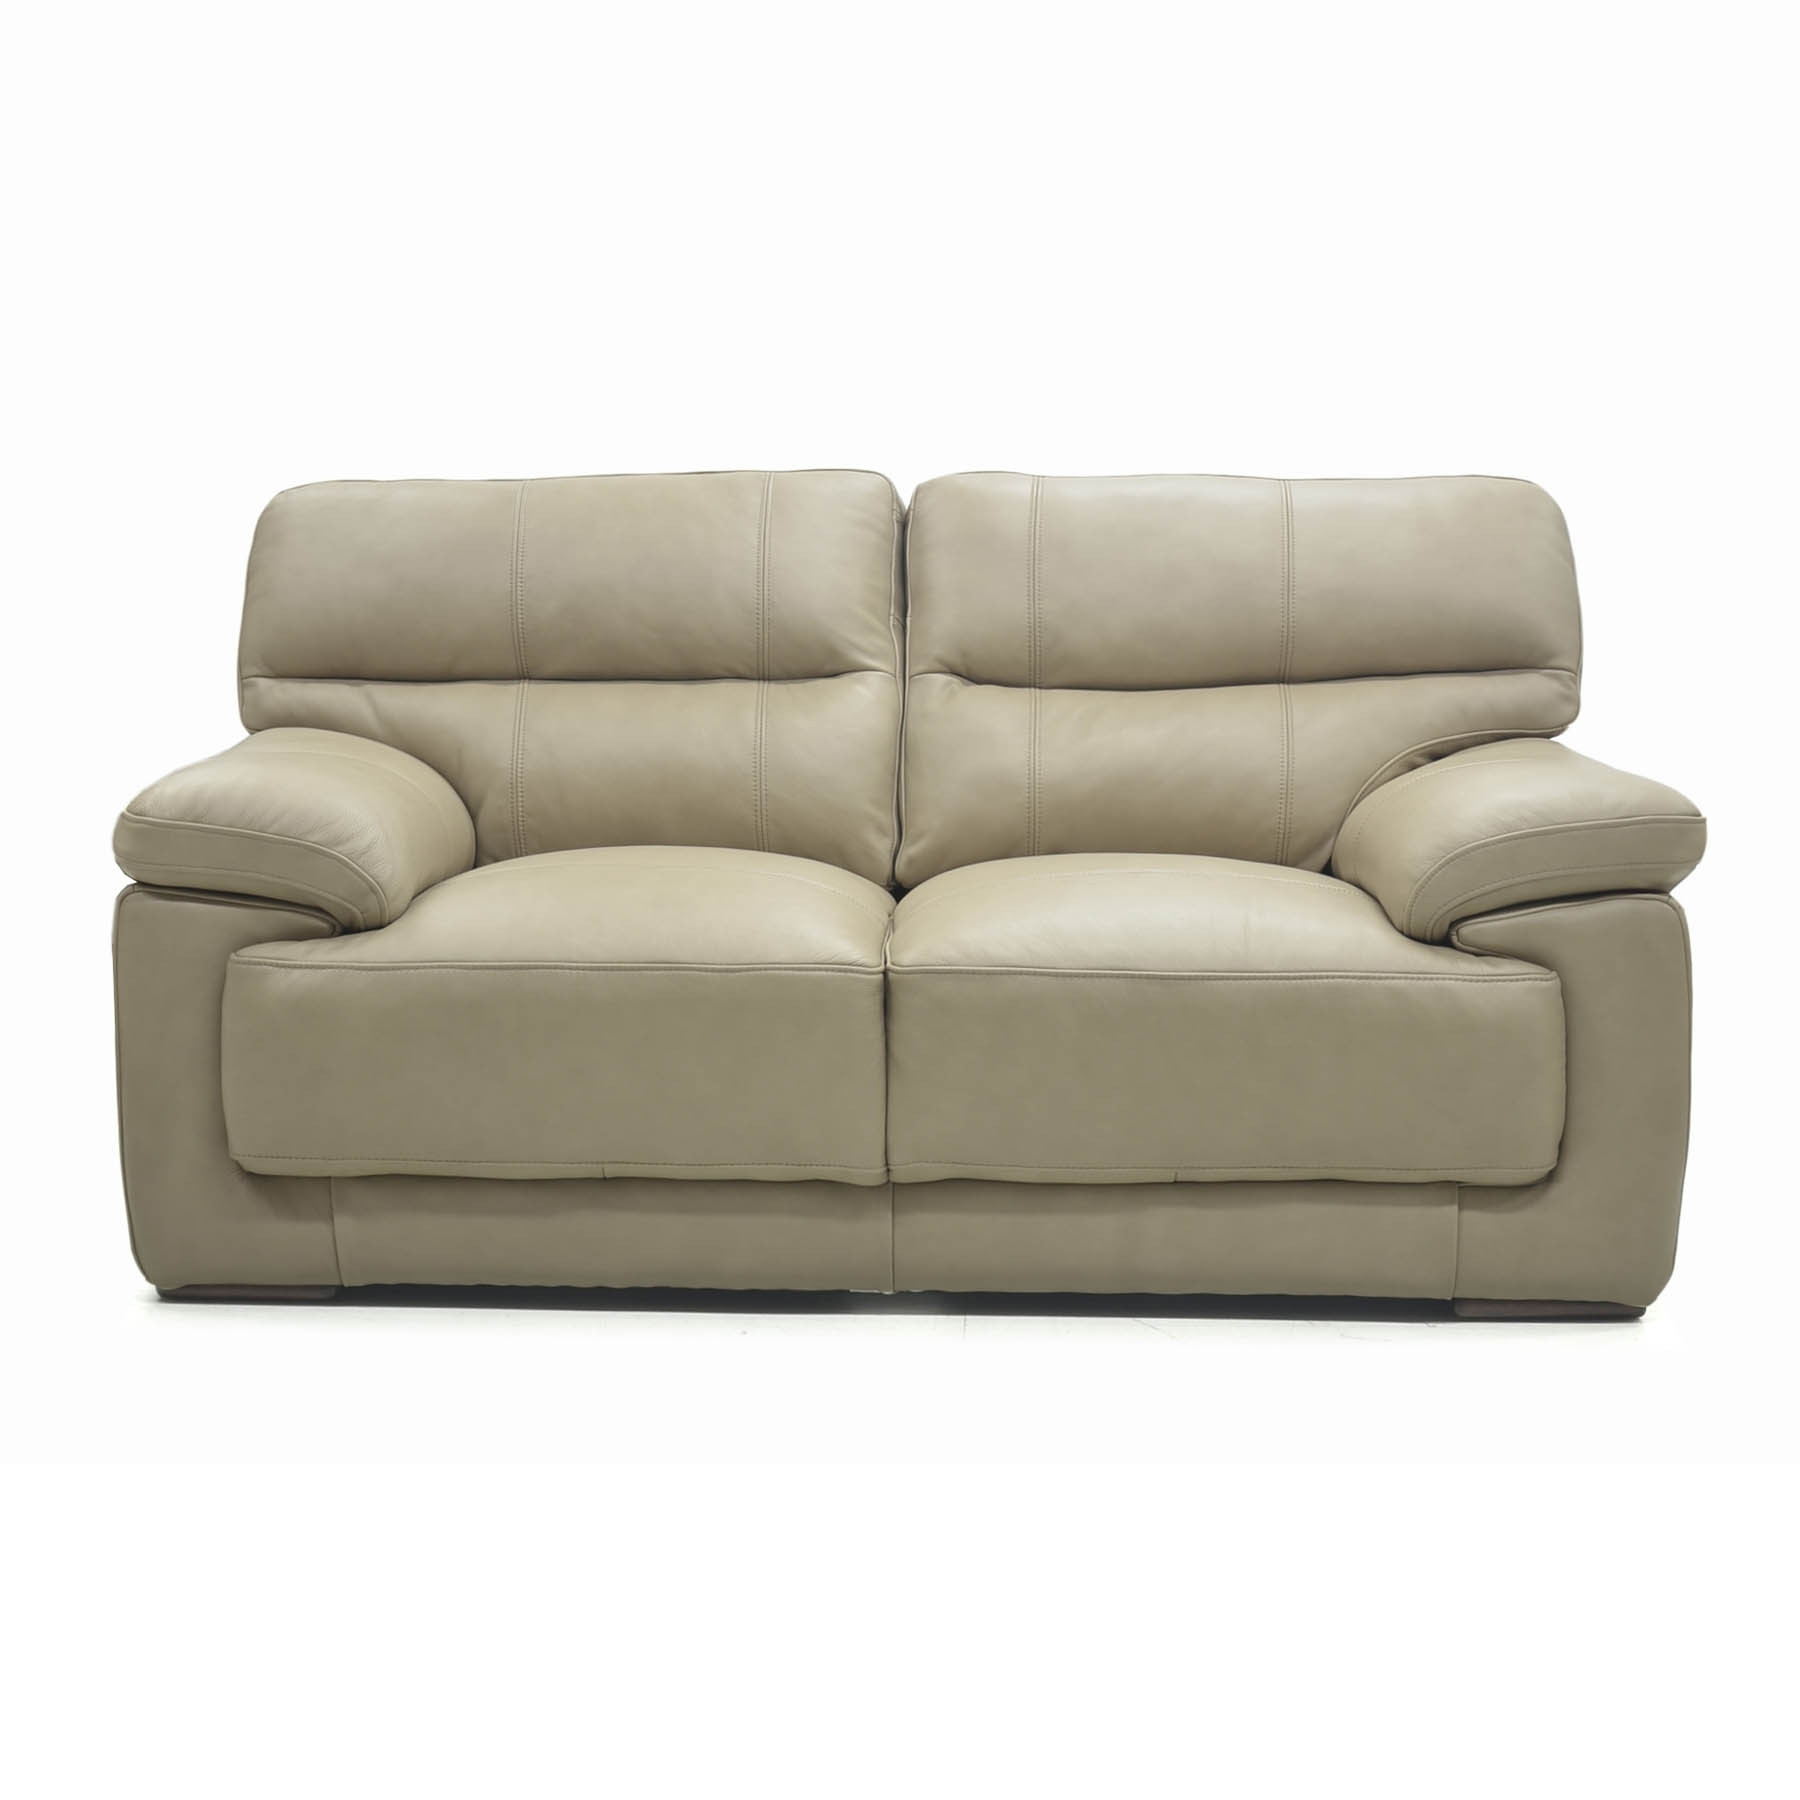 Preferred Florence Medium 2 Seater Sofa With Regard To Florence Medium Sofas (View 12 of 20)